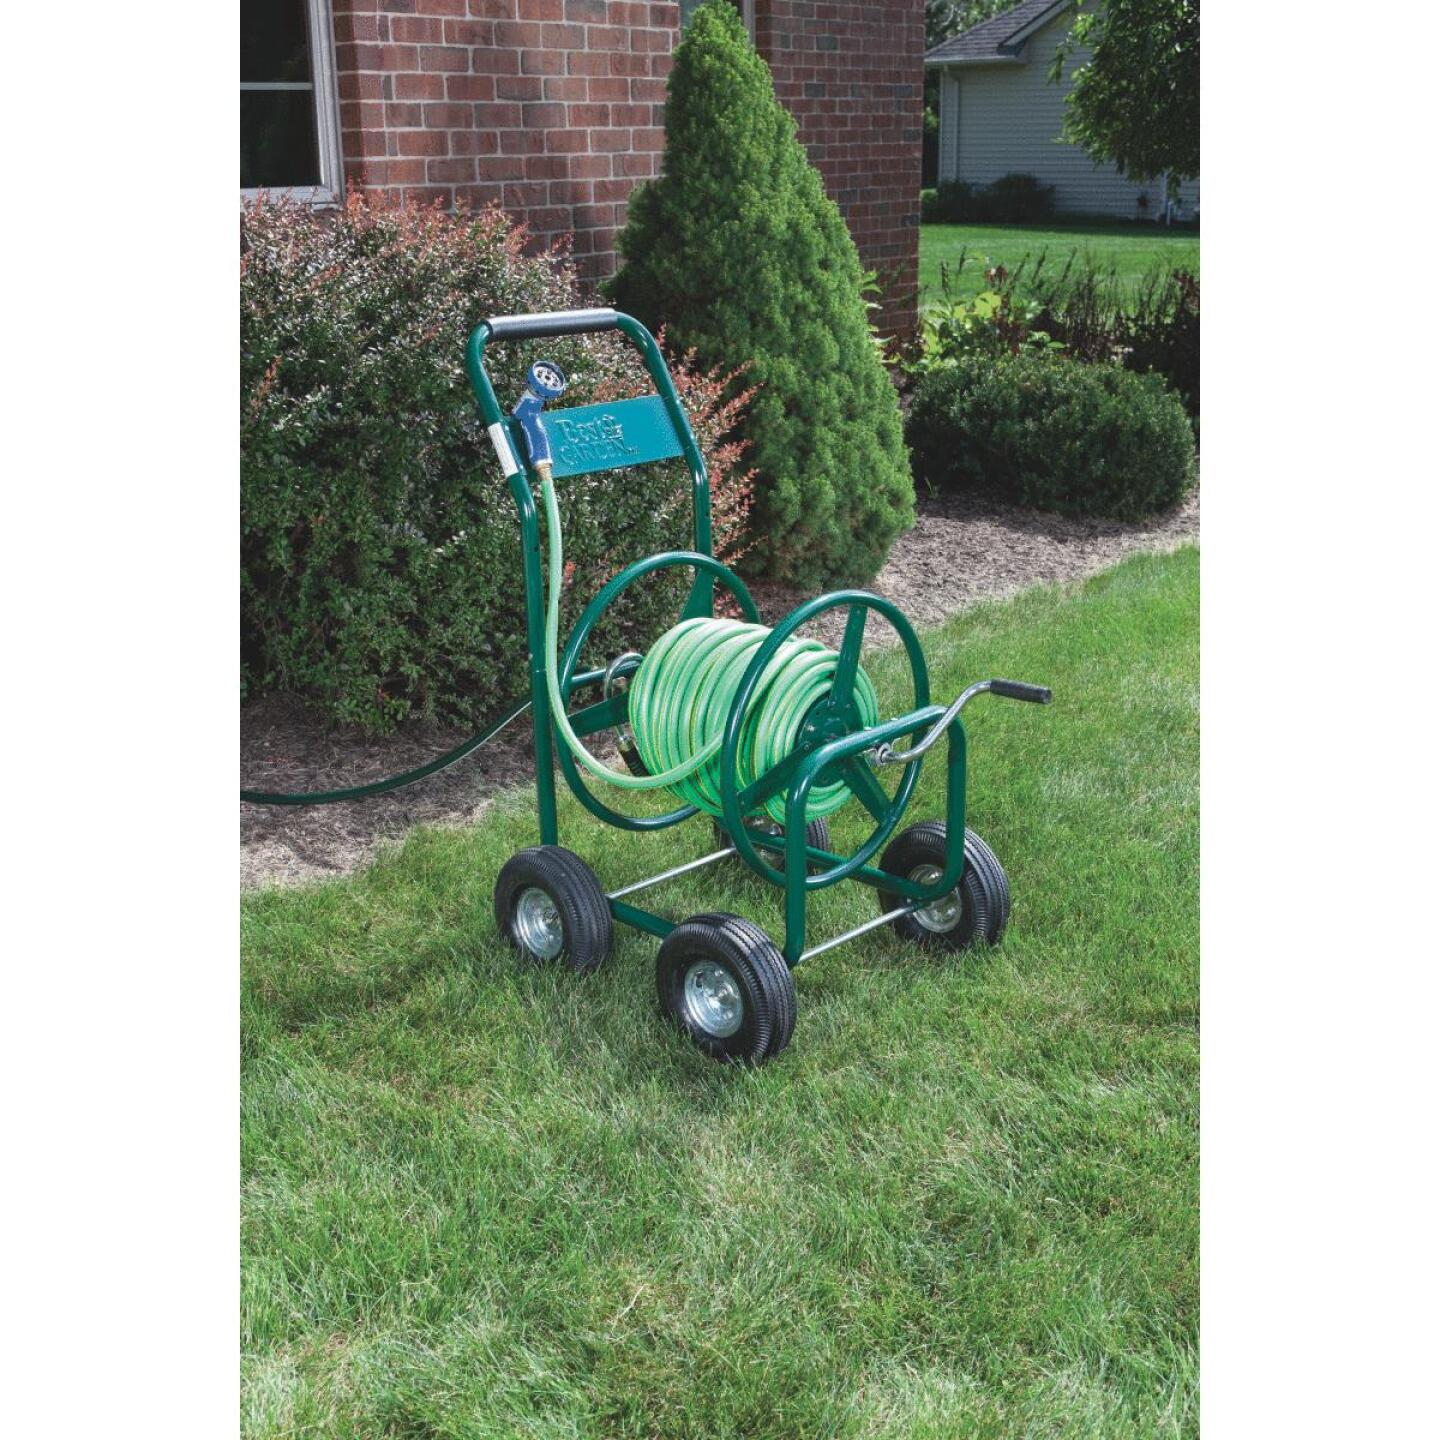 Best Garden 300 Ft. x 5/8 In. Green Metal 4-Wheel Portable Hose Reel Image 1